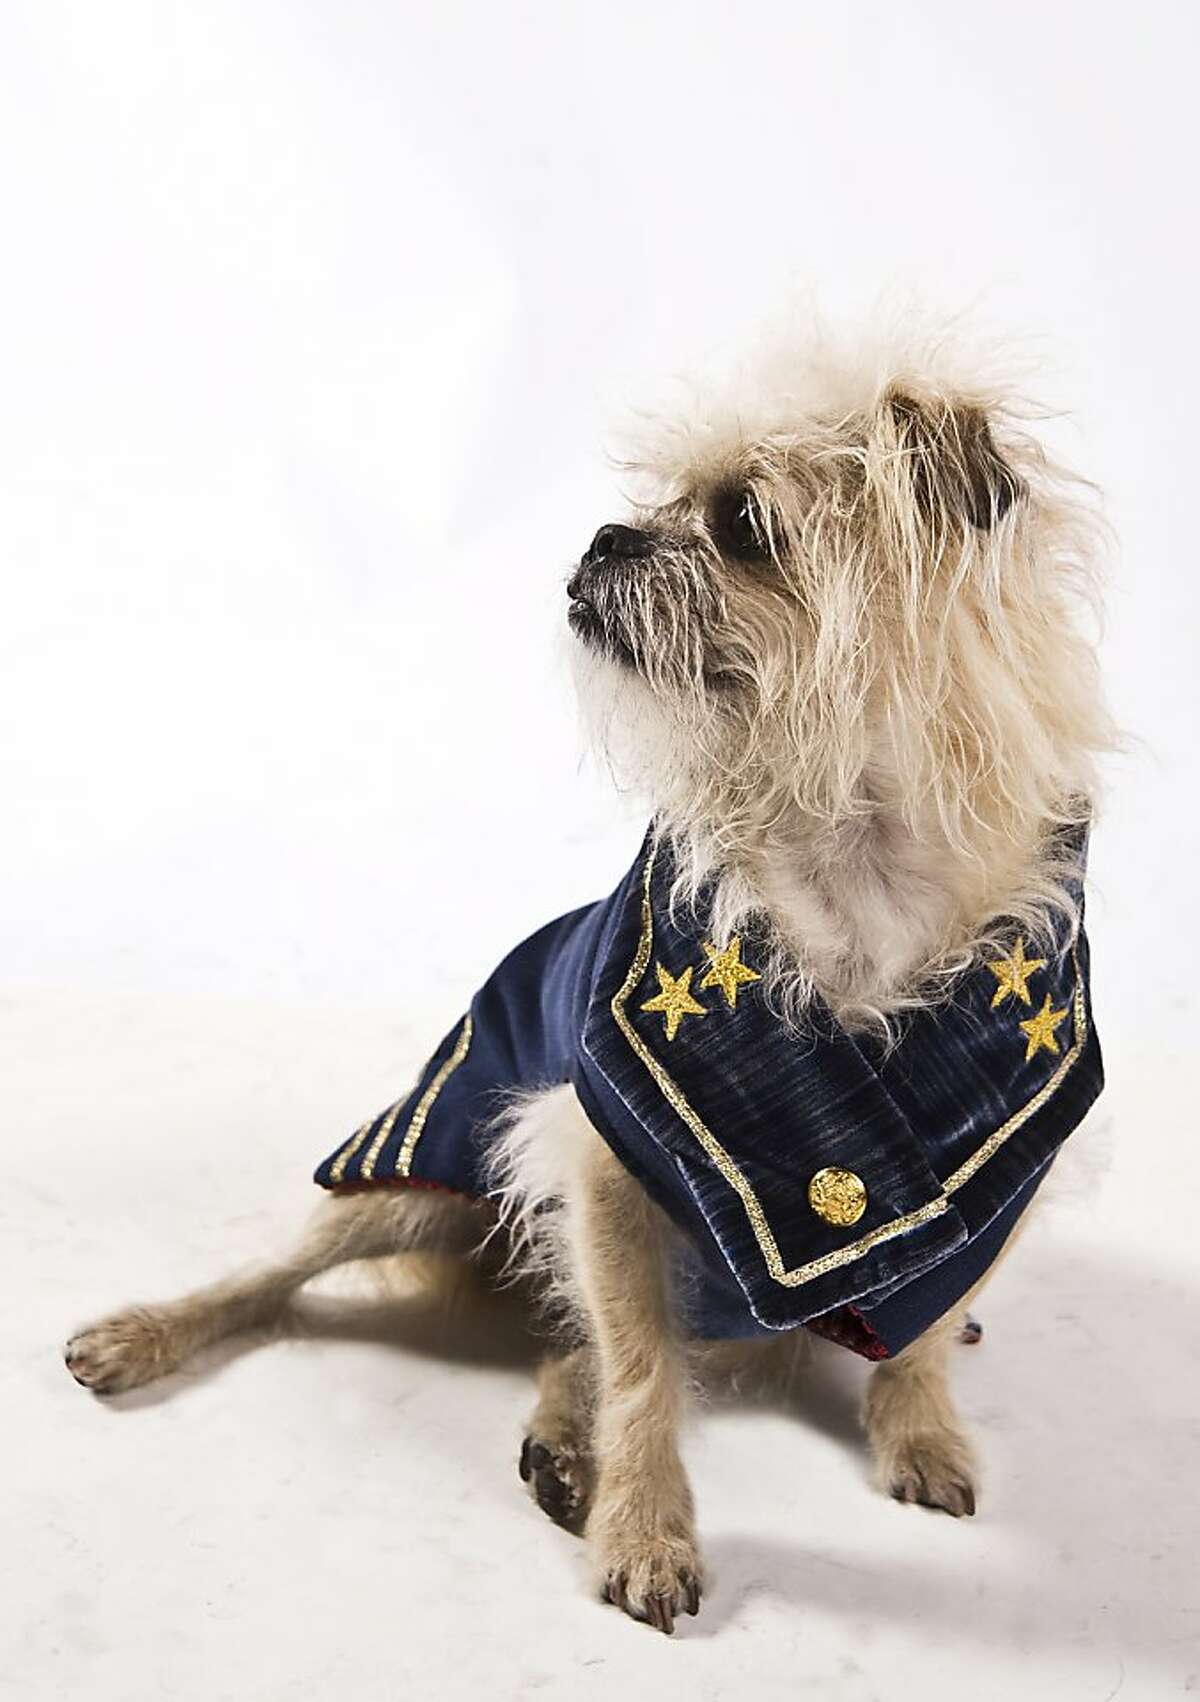 Napoleon, a Brussels Griffon/ Pug mix, he is wearing a 19th century-inspired bespoke navy blue coat designed and made by Susan Chastain. Fabric by Villa Romo. Napoleon was escorted for the evening by Alisa Carroll who had him on loan from Stevie Stacionis and Josiah Baldivino. Haute Dog SF a fashion show of San Francisco's fashion aware dogs held Friday February 3, 2012 at the San Francisco Design Center. The show included 60+ dogs taking to the runway to strut their stuff. The event was a benefit for Canine Companions.